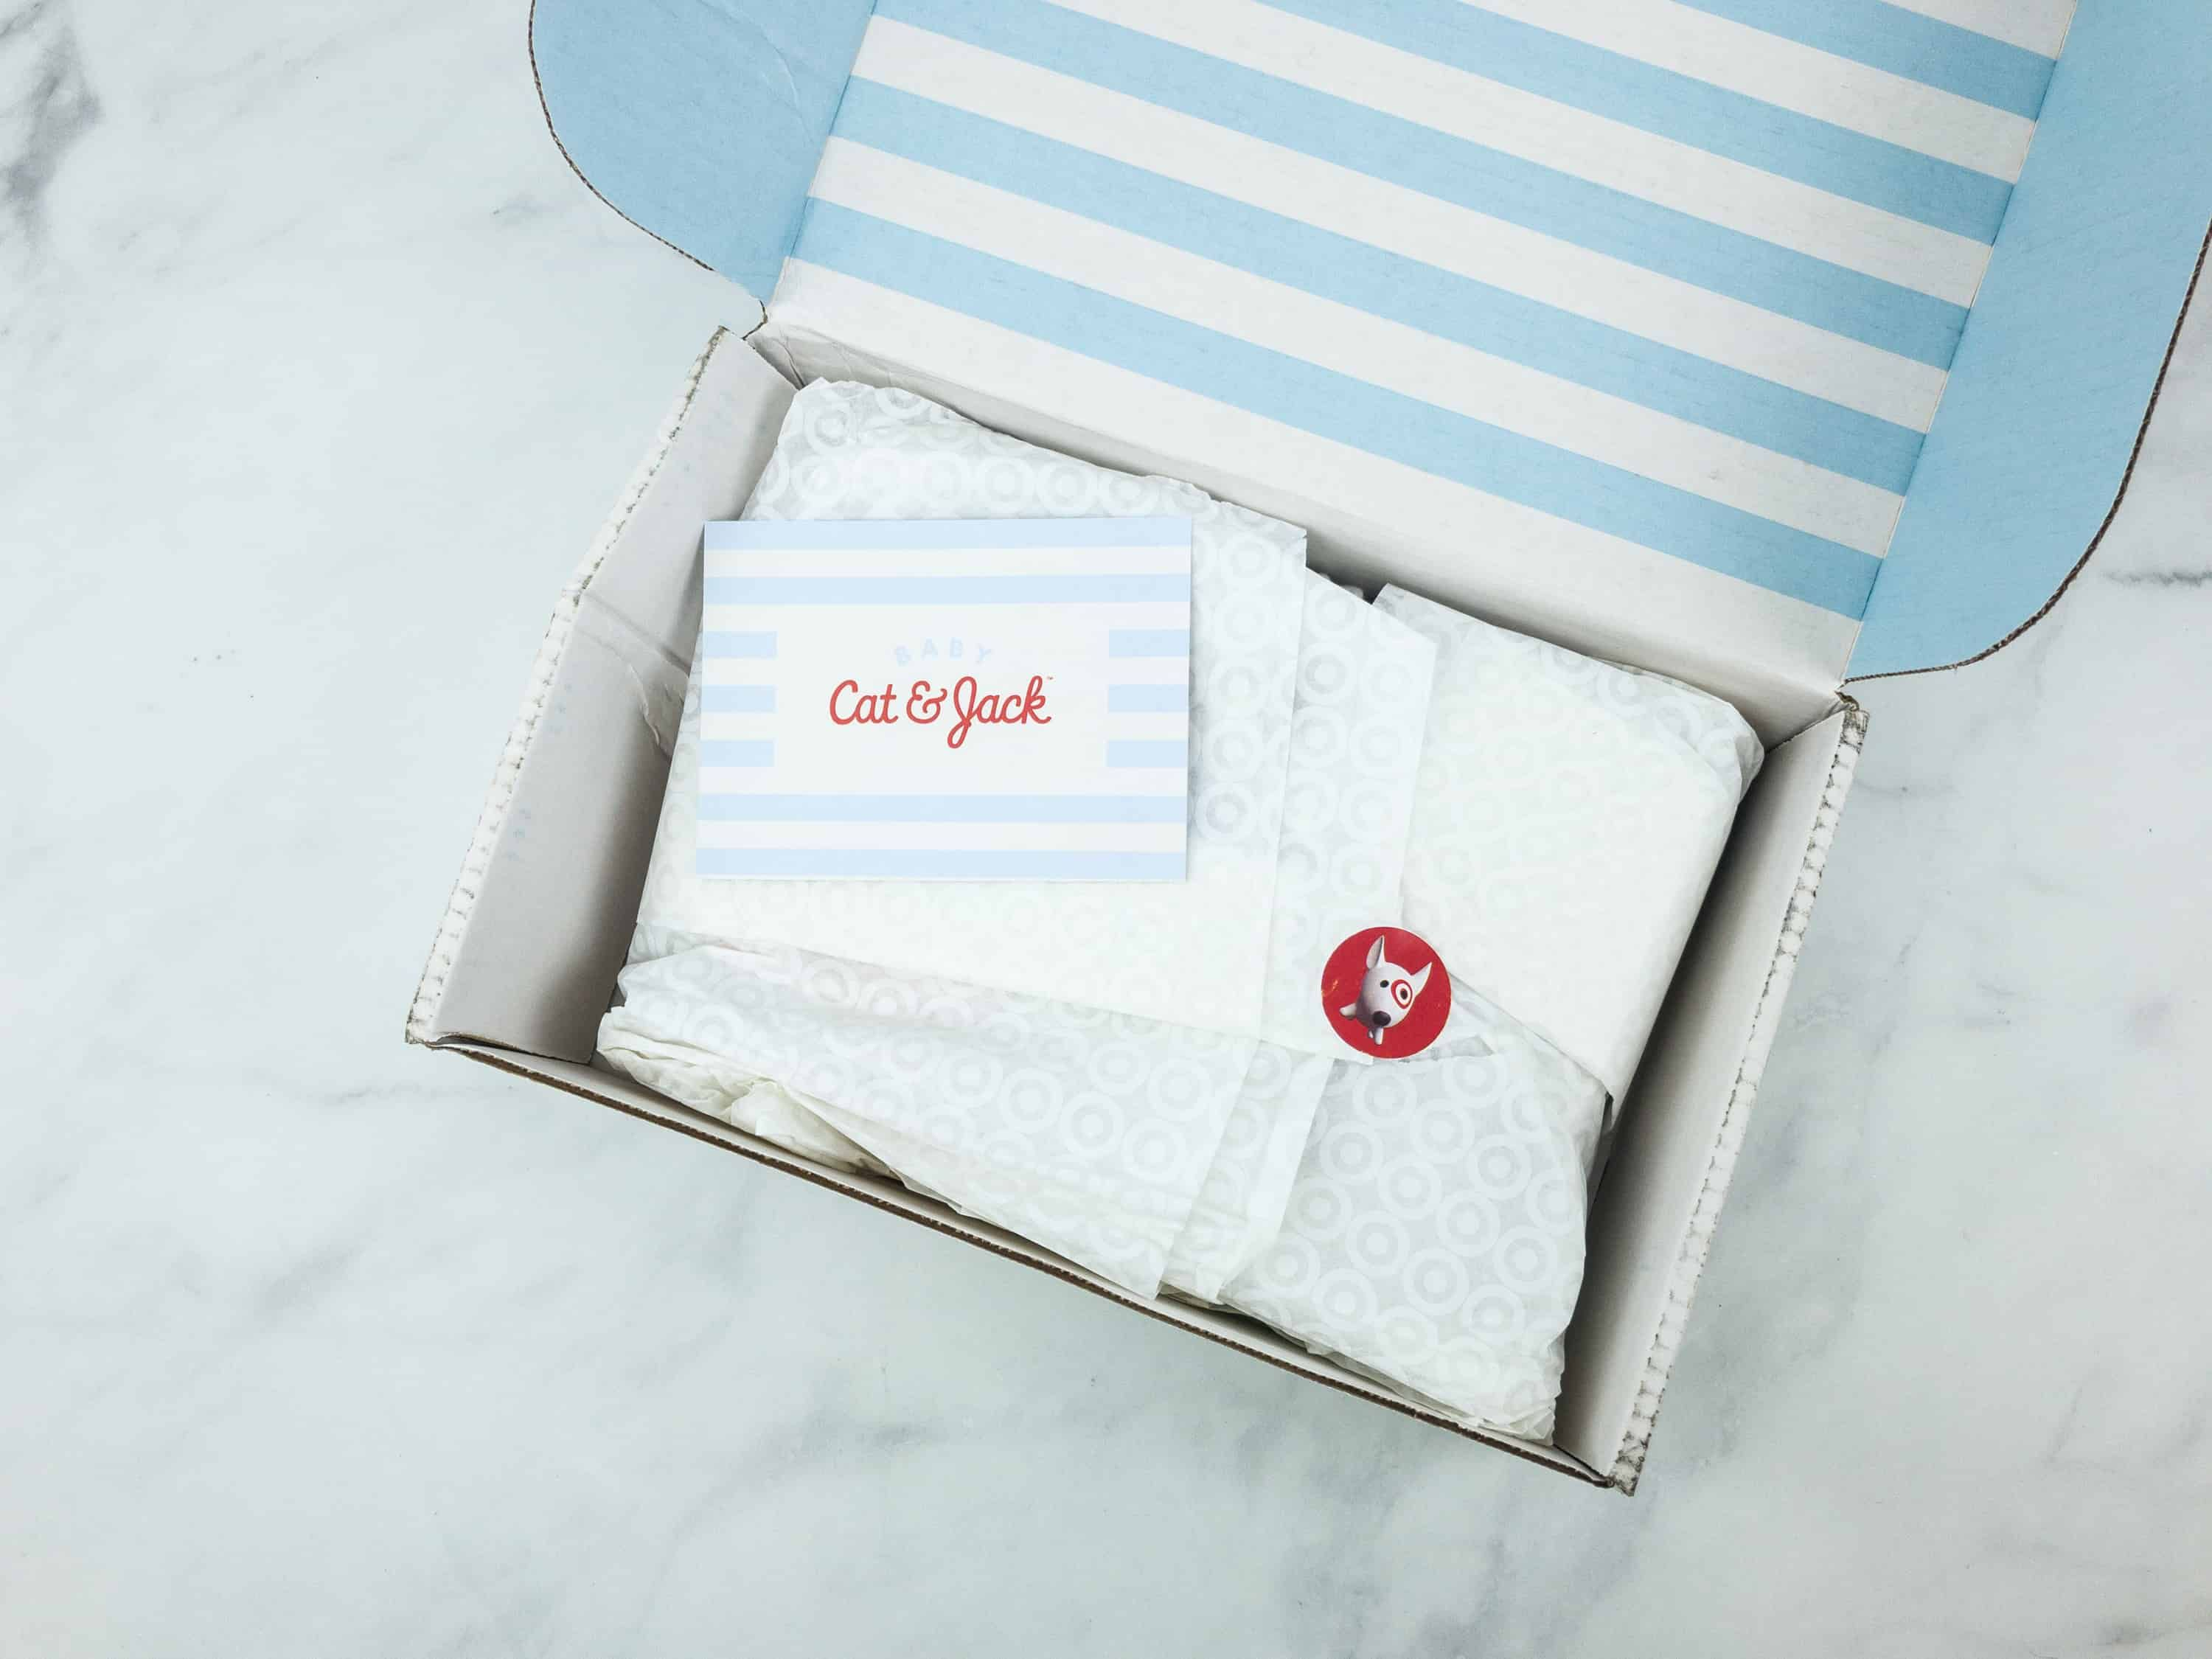 Cat & Jack Baby Outfit Box Subscription boxes for girls